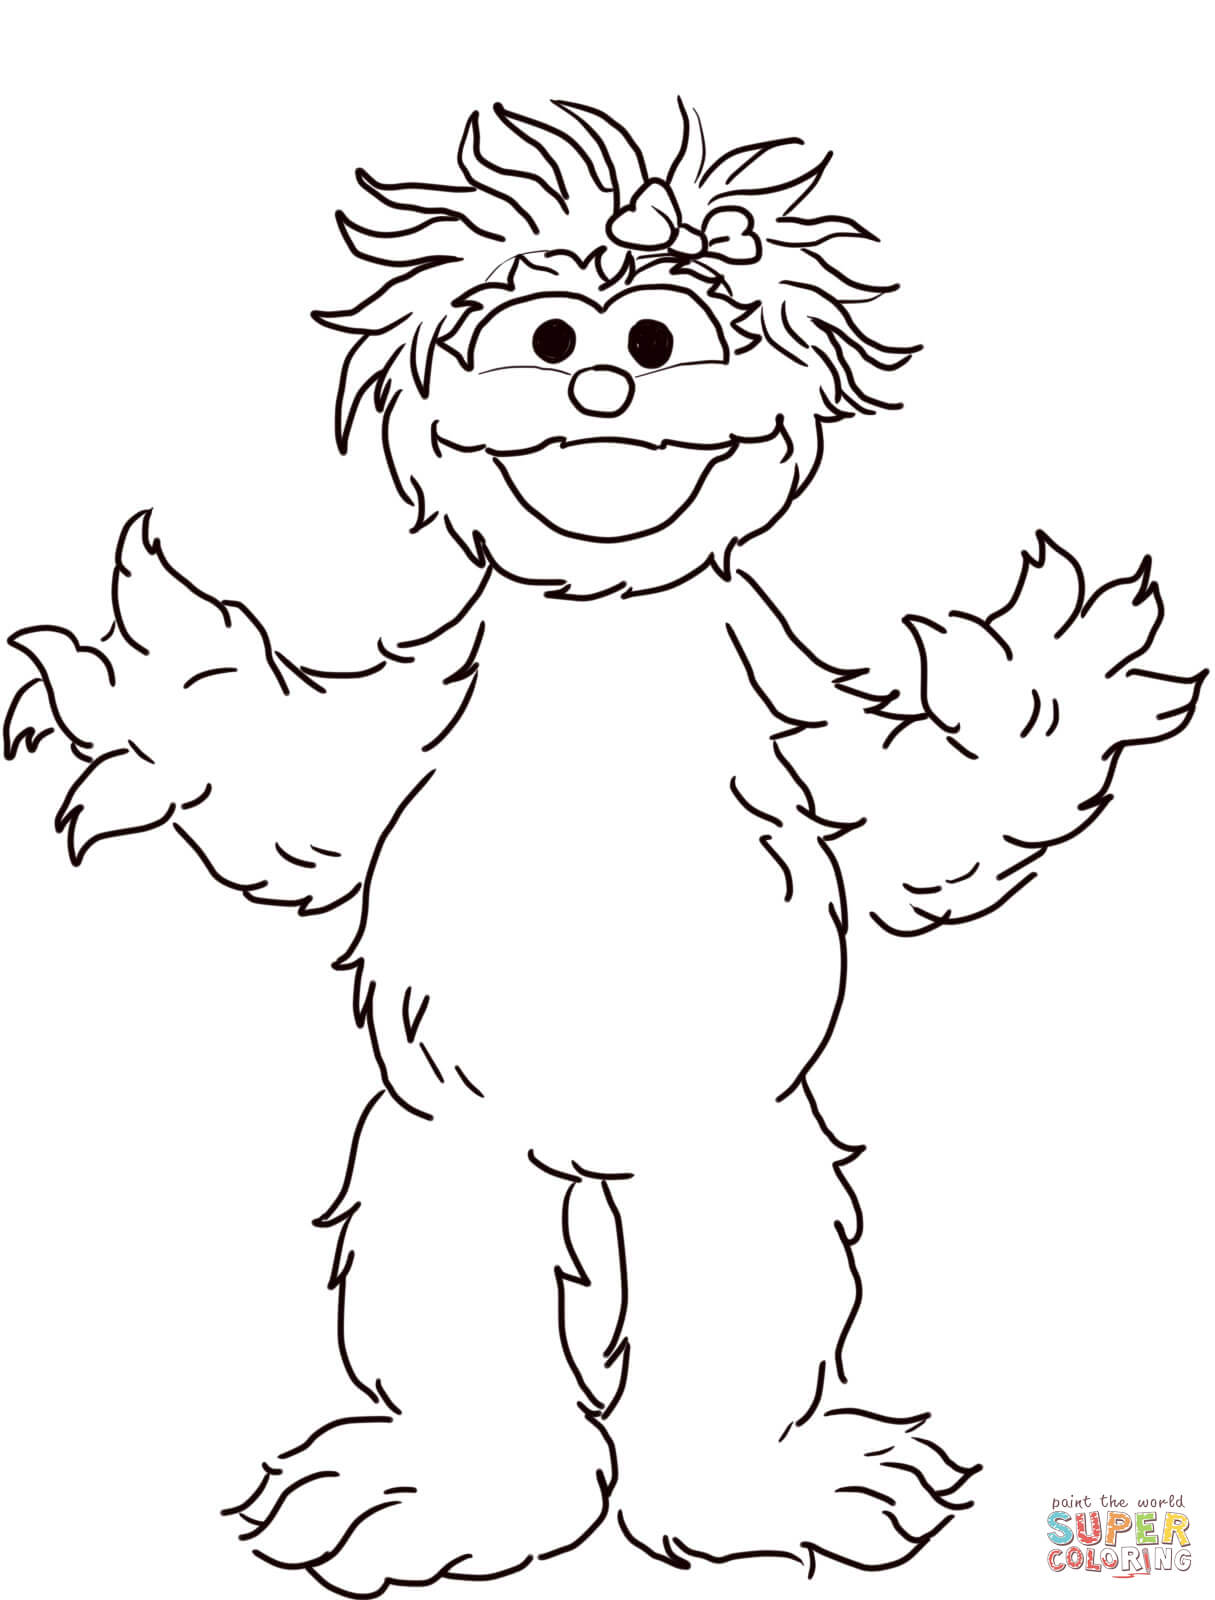 stuffed animal coloring pages - photo#33